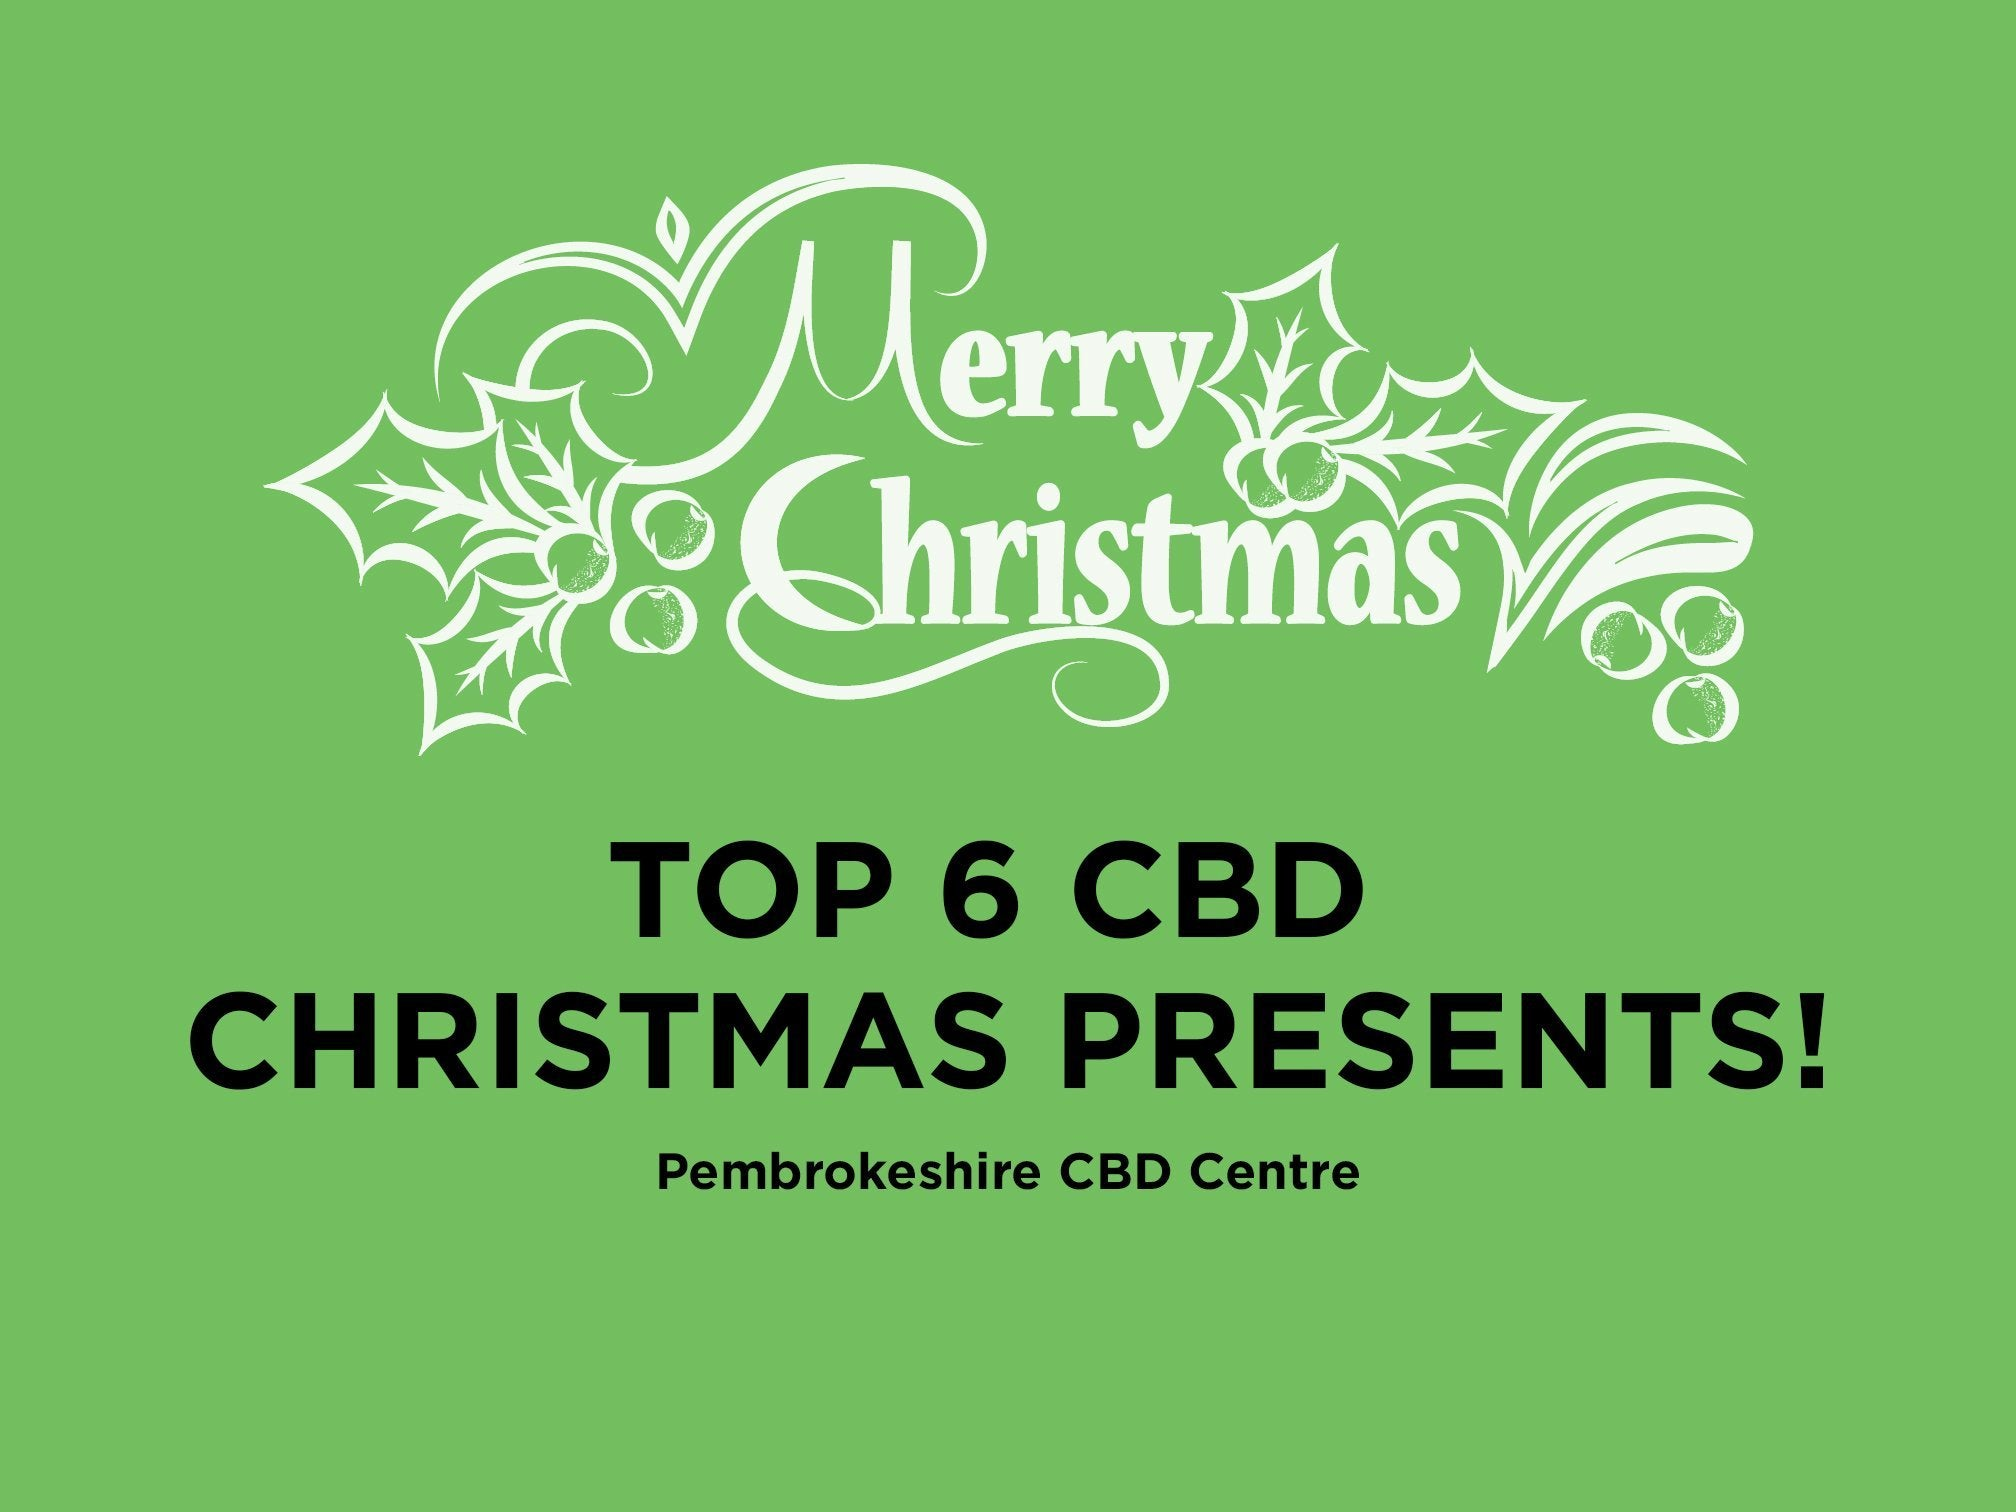 Top 6 CBD Christmas Gifts 2019